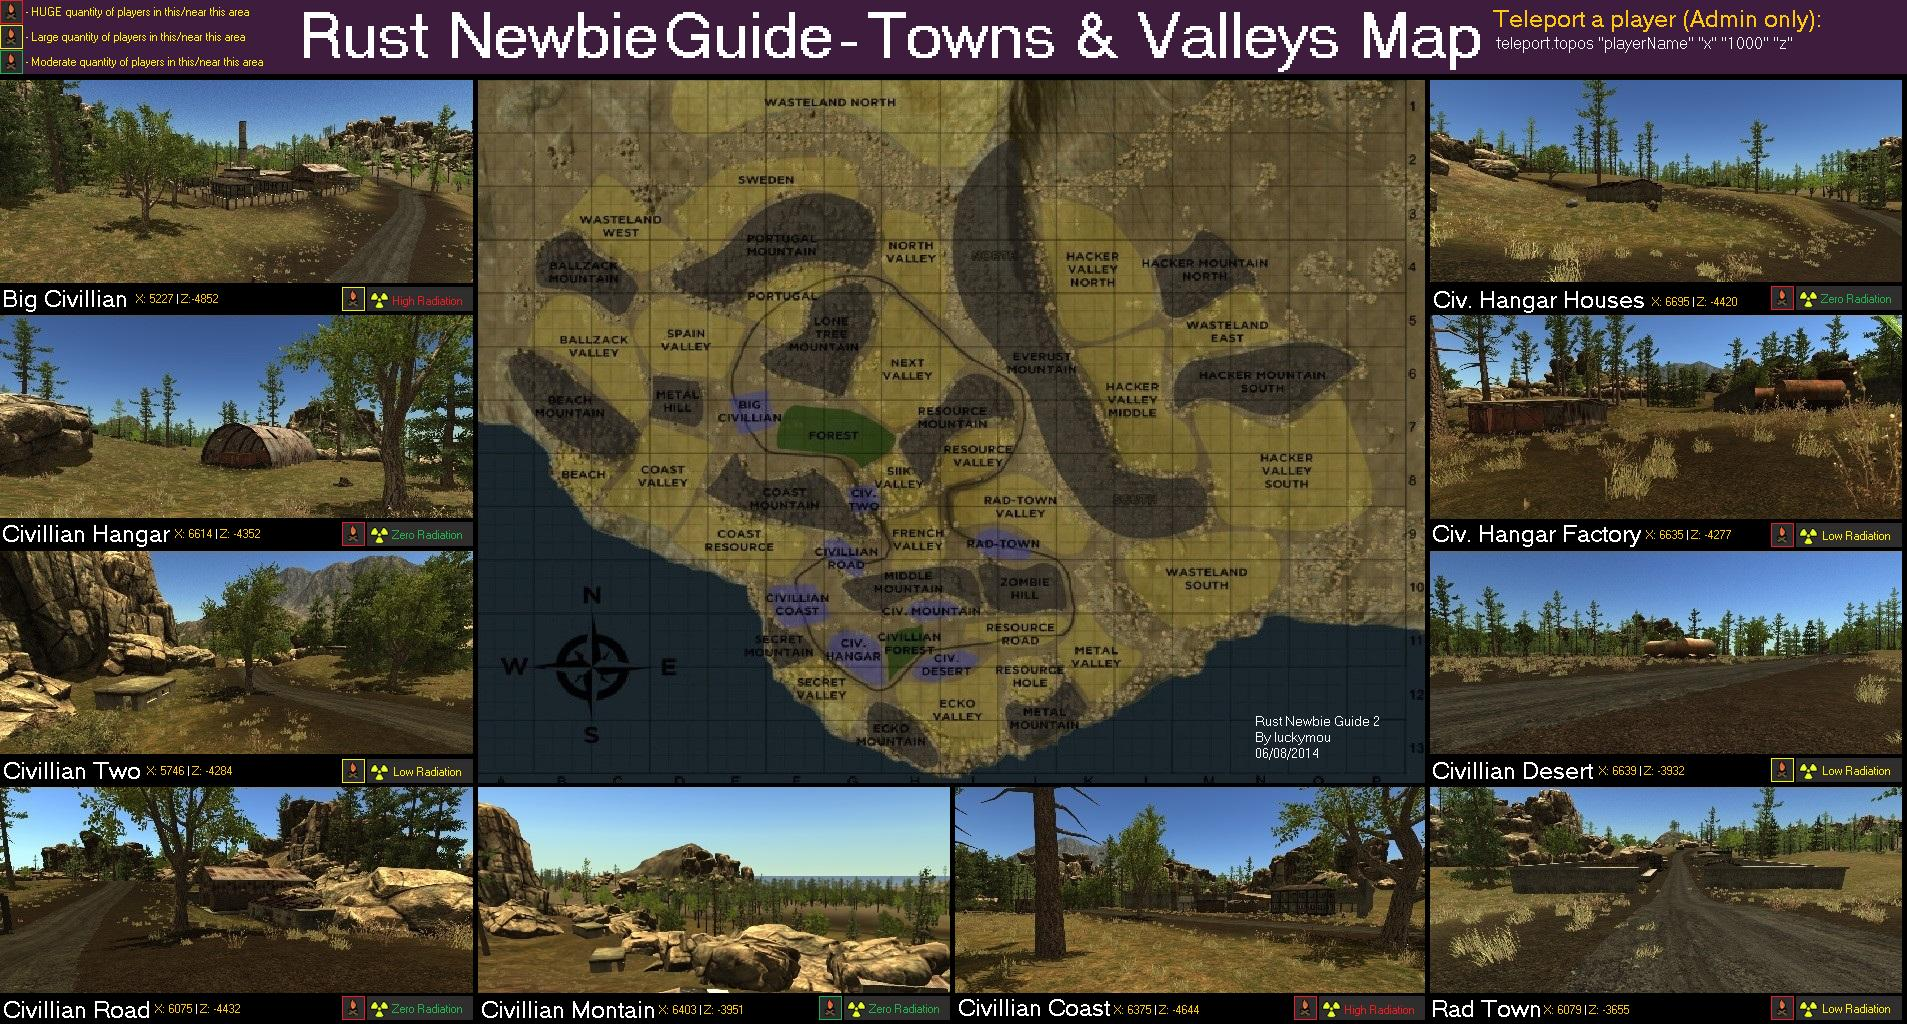 Map (Legacy) | Rust Wiki | FANDOM powered by Wikia on rust legacy map, rust world map, soybean rust map, rust radar locations, rust part 1, rust map monuments, rust steam, west east south north map, rust map 2015, rust holes, rust resource map, rust map procedural, rust experimental map, rust map 2014, h1z1 map, rust map.net, rust map official, rust guns, mw3 rust map, rust marks map,